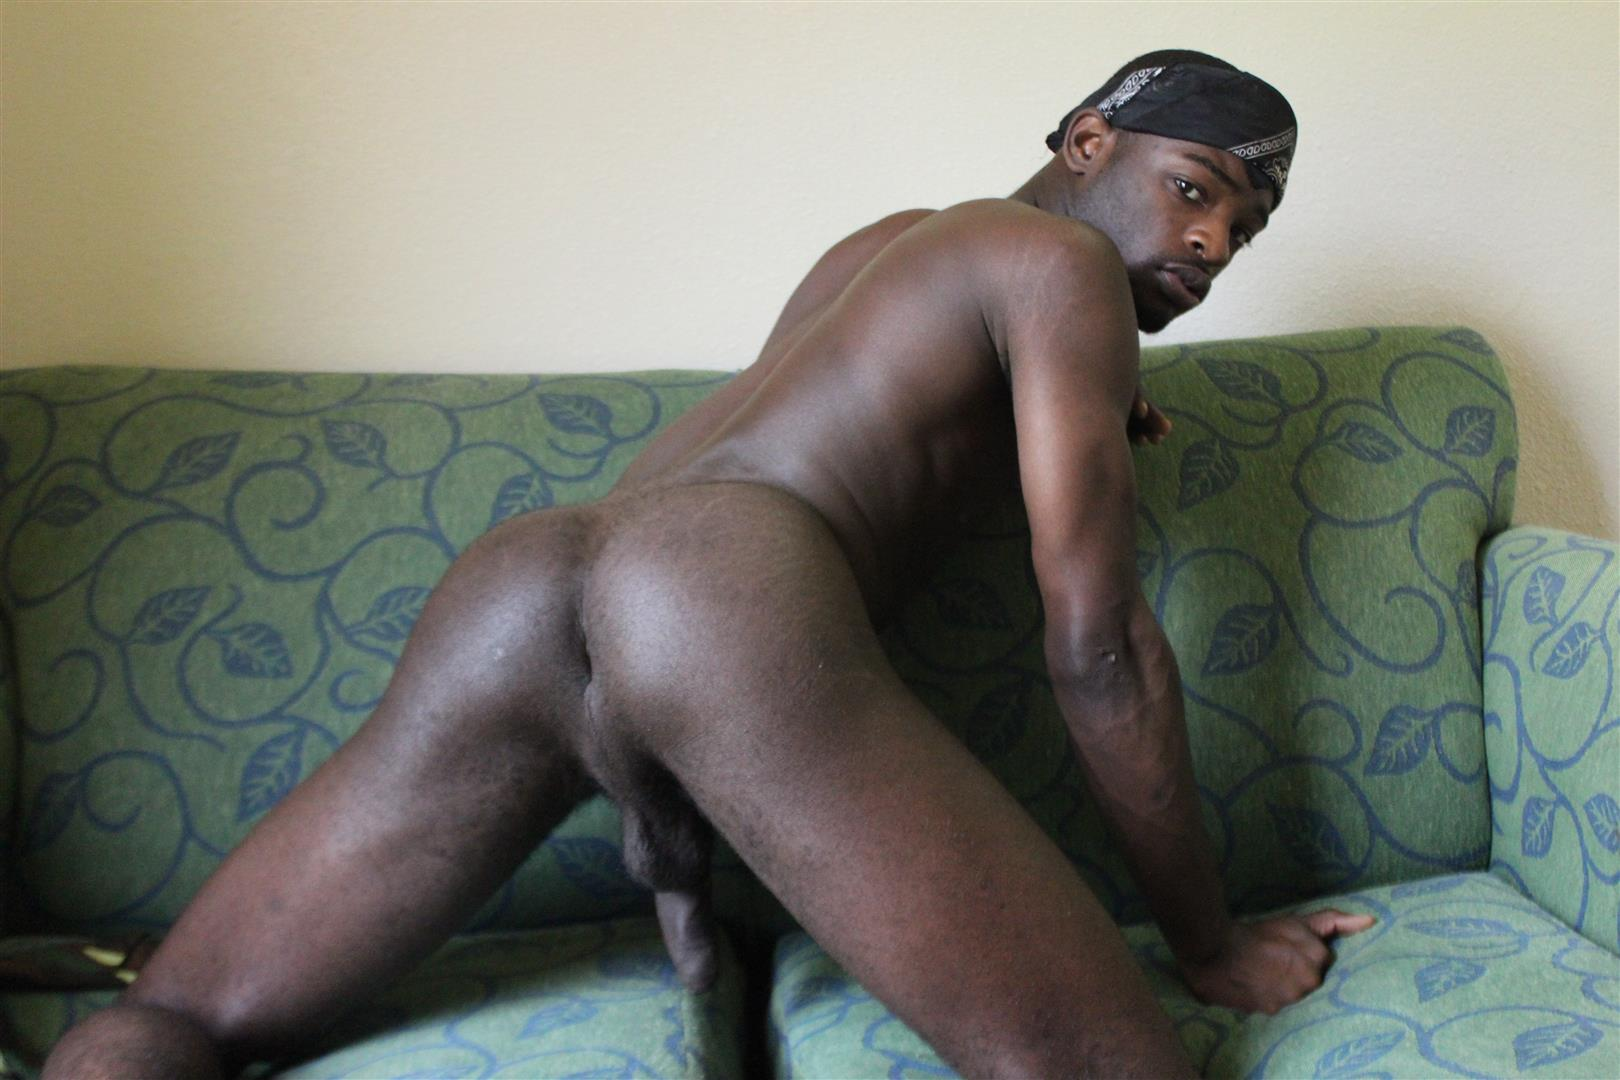 Black gay sex downloads he also detected